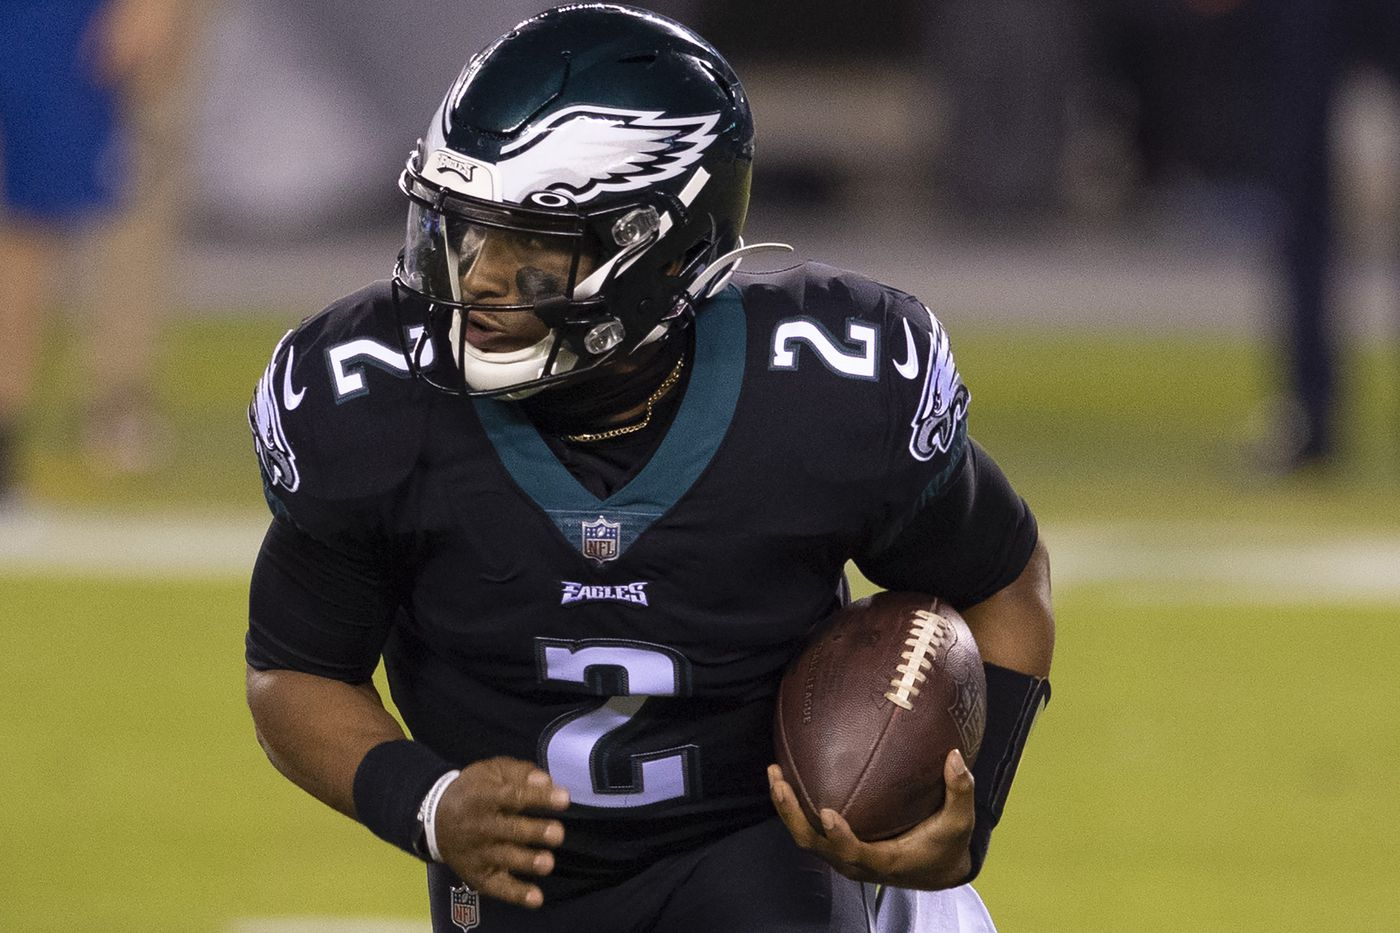 Eagles will be wearing black jerseys for Jalen Hurts' first NFL ...